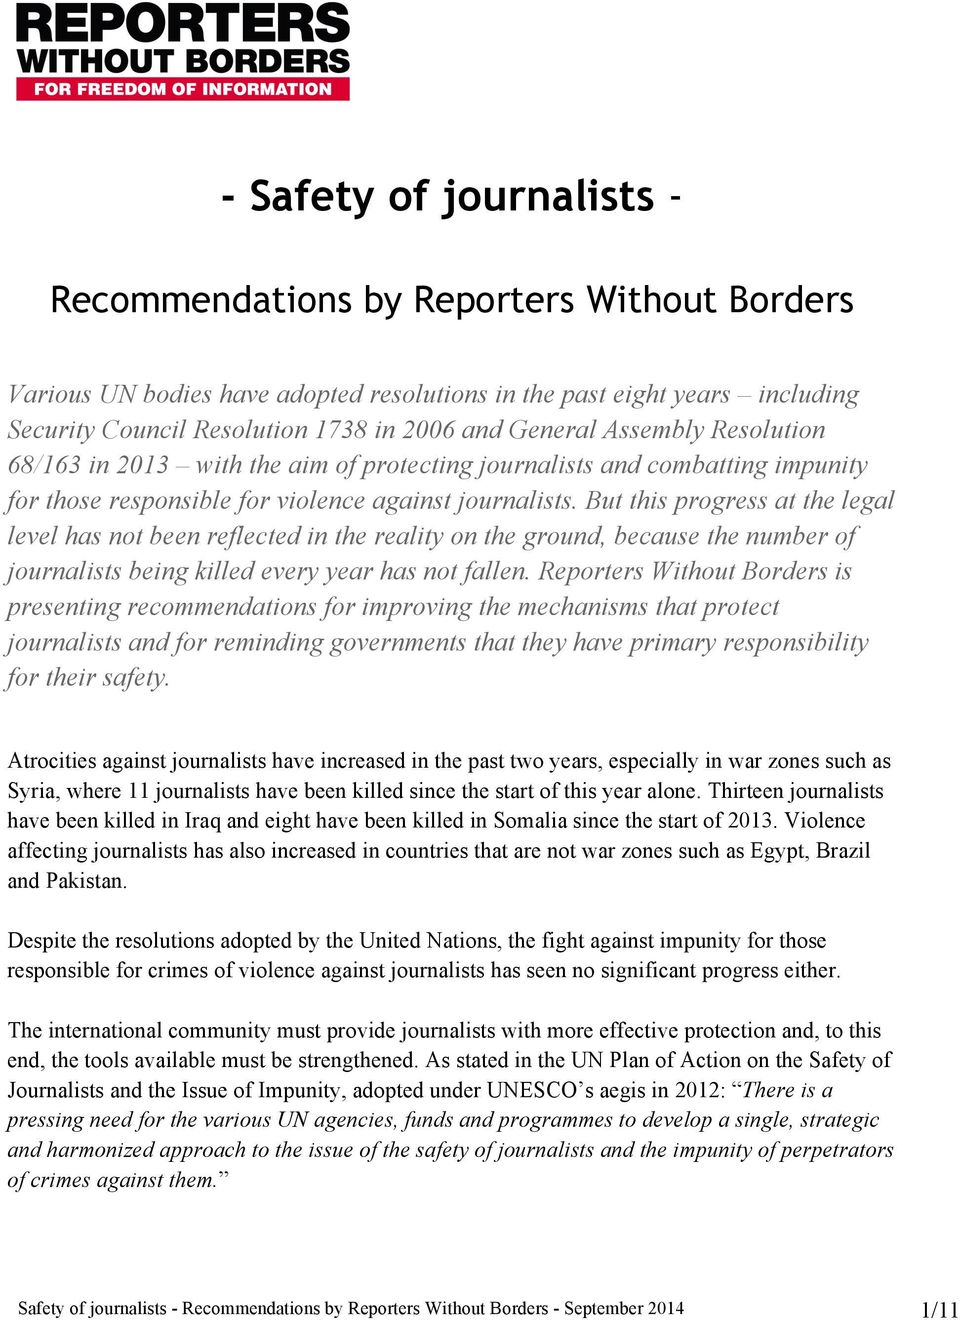 But this progress at the legal level has not been reflected in the reality on the ground, because the number of journalists being killed every year has not fallen.